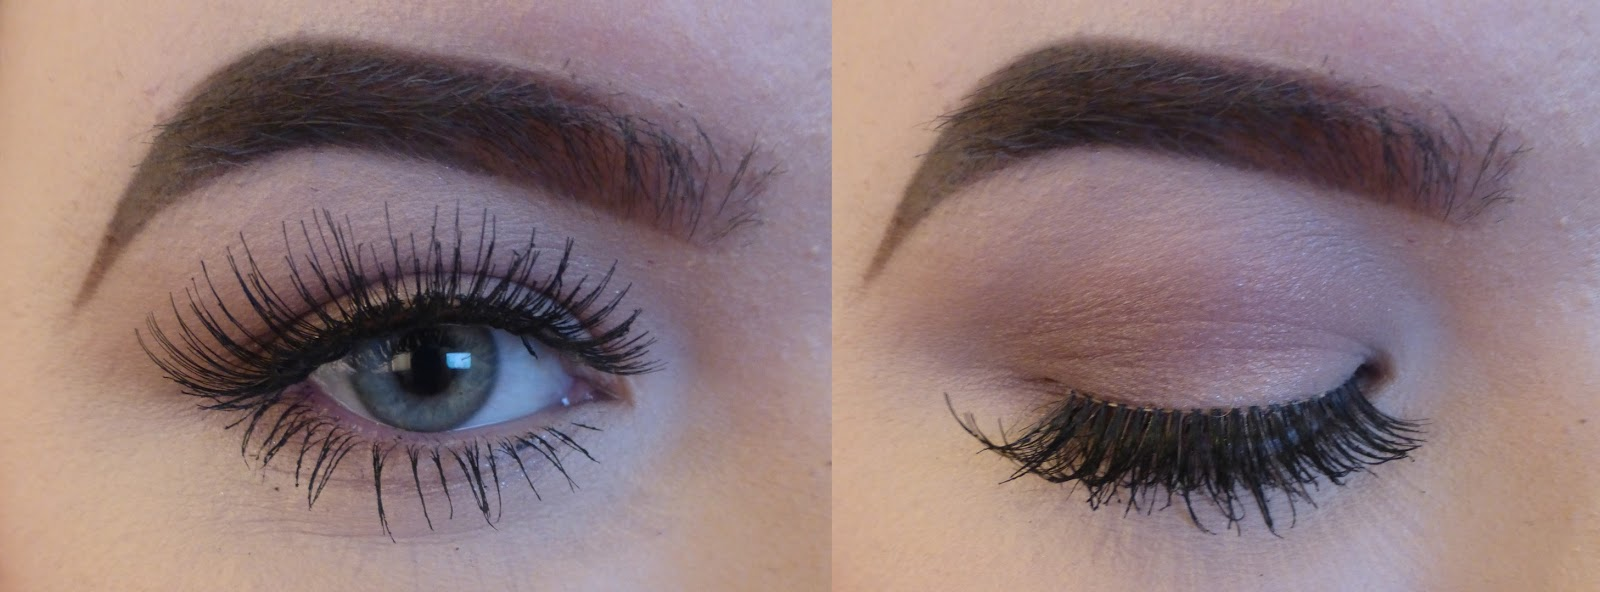 Eylure Lengthening Lashes 155, makeup revolution, georgina grogan